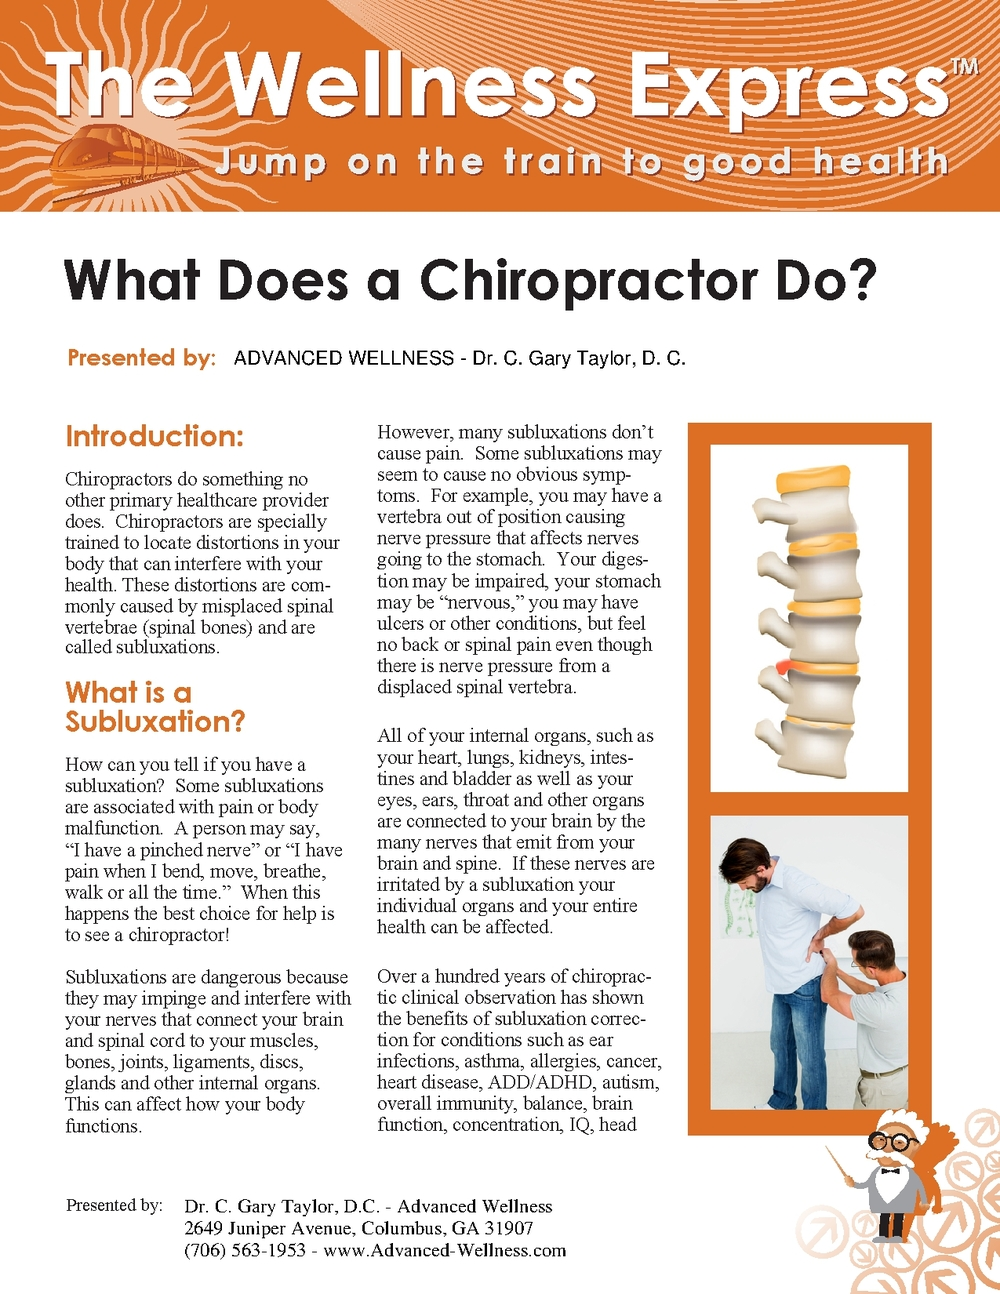 Weekly Newsletter: What Does a Chiropractor Do?